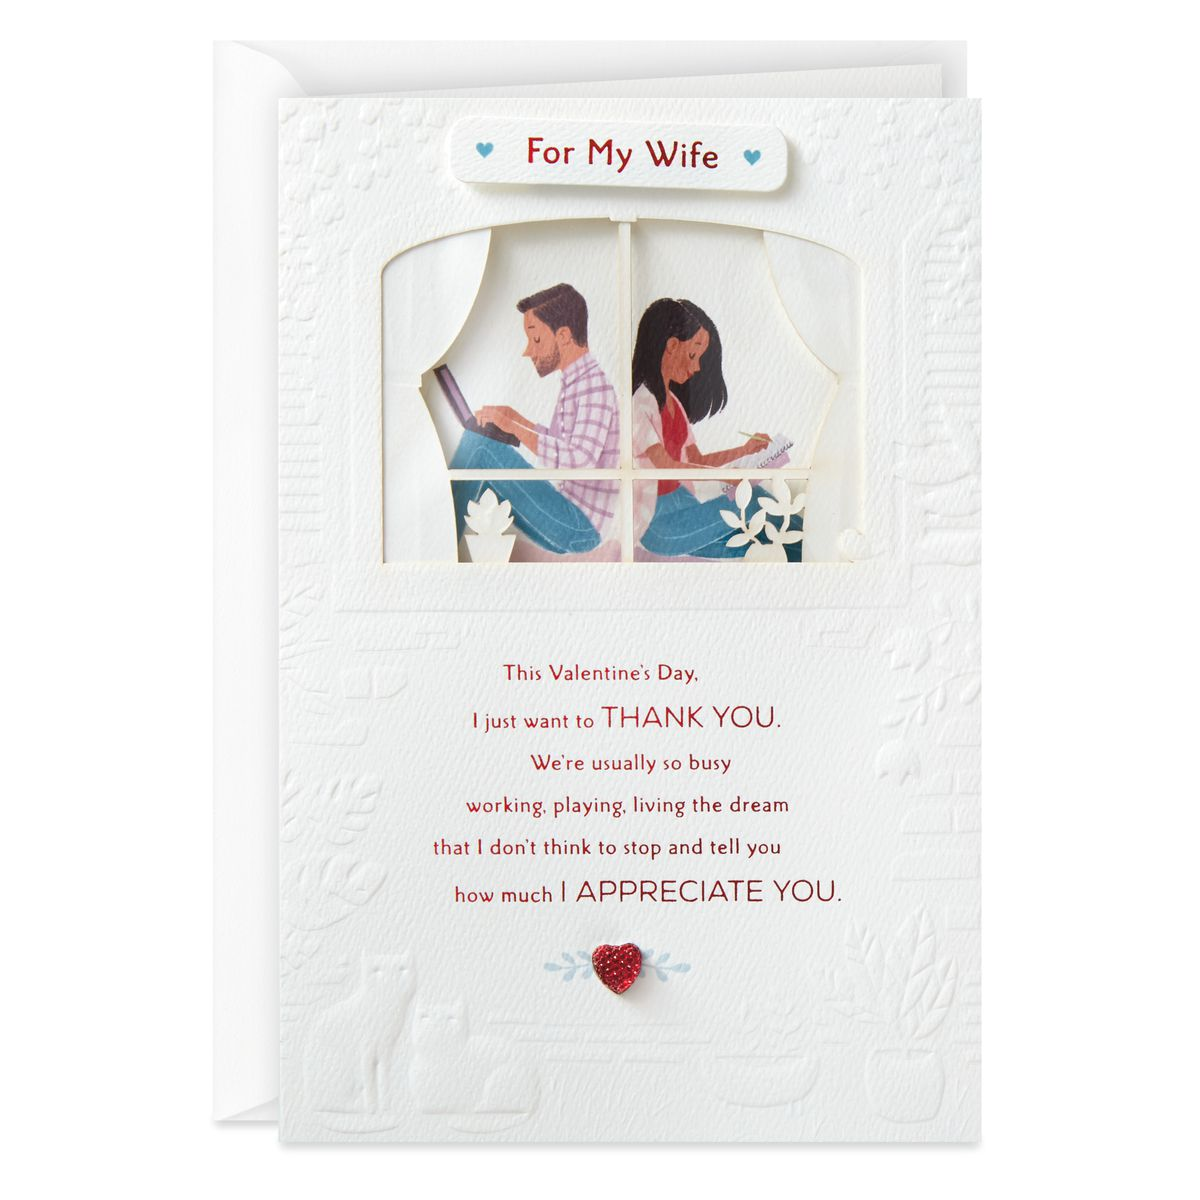 """A card with a man and woman sitting back to back in a house, reading """"For my wife: This Valentine's Day, I just want to THANK YOU. We're usually so busy working, playing, living the dream that I don't think to stop and tell you how much I APPRECIATE YOU."""""""